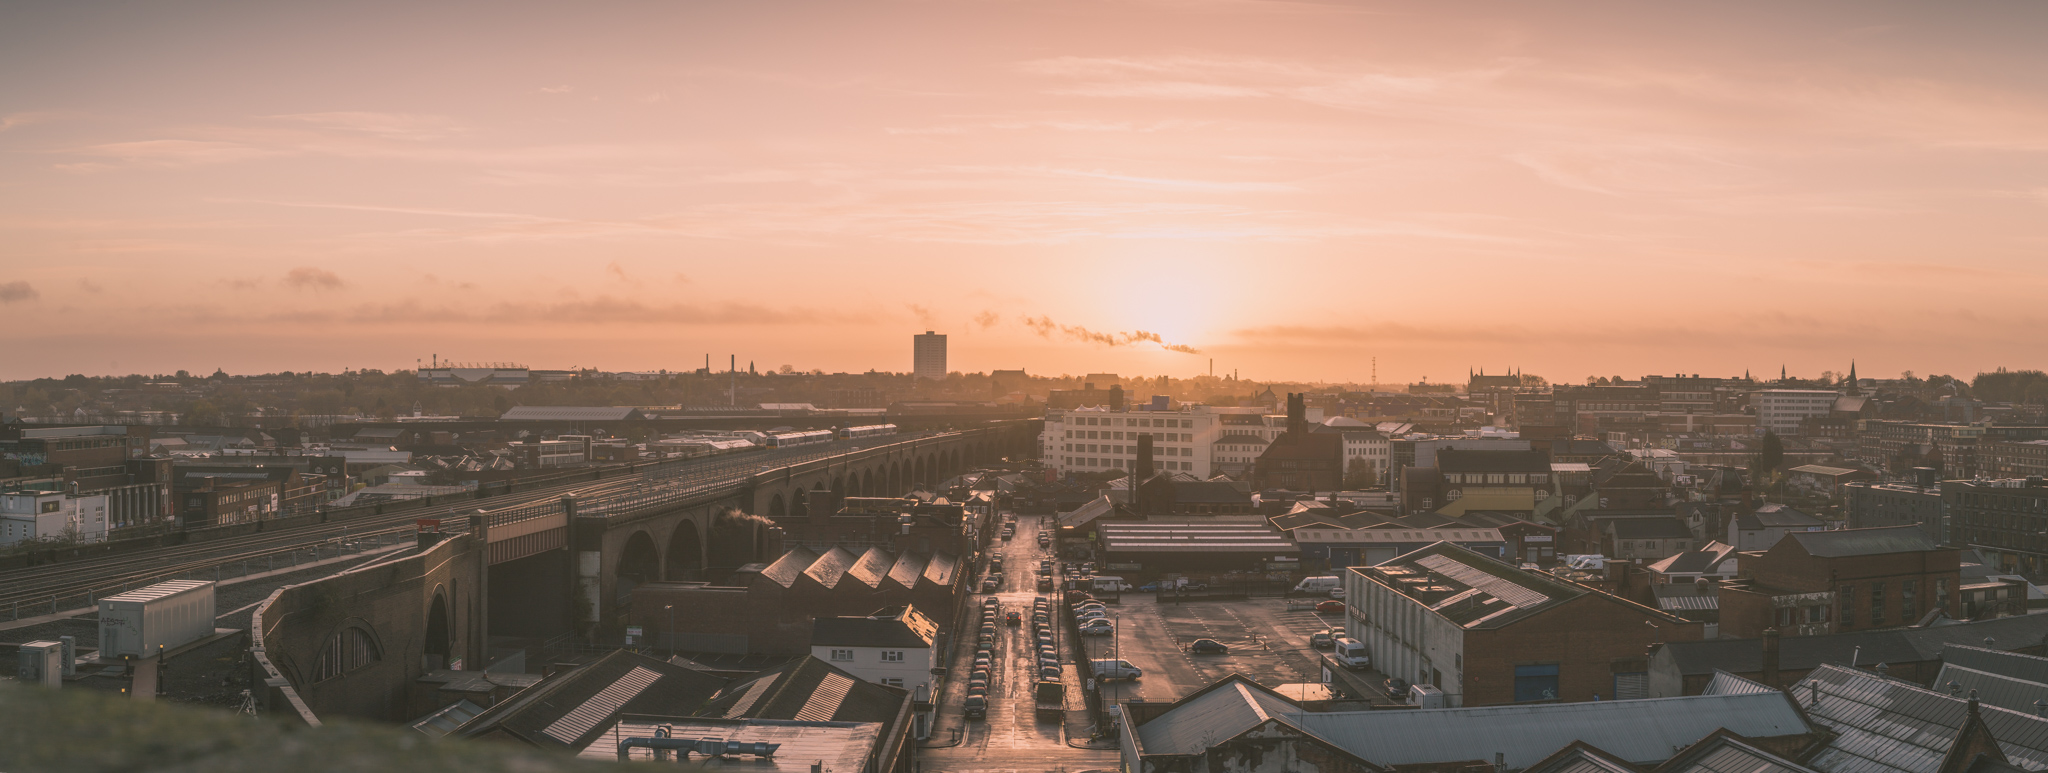 The view over Digbeth from Selfridges car park